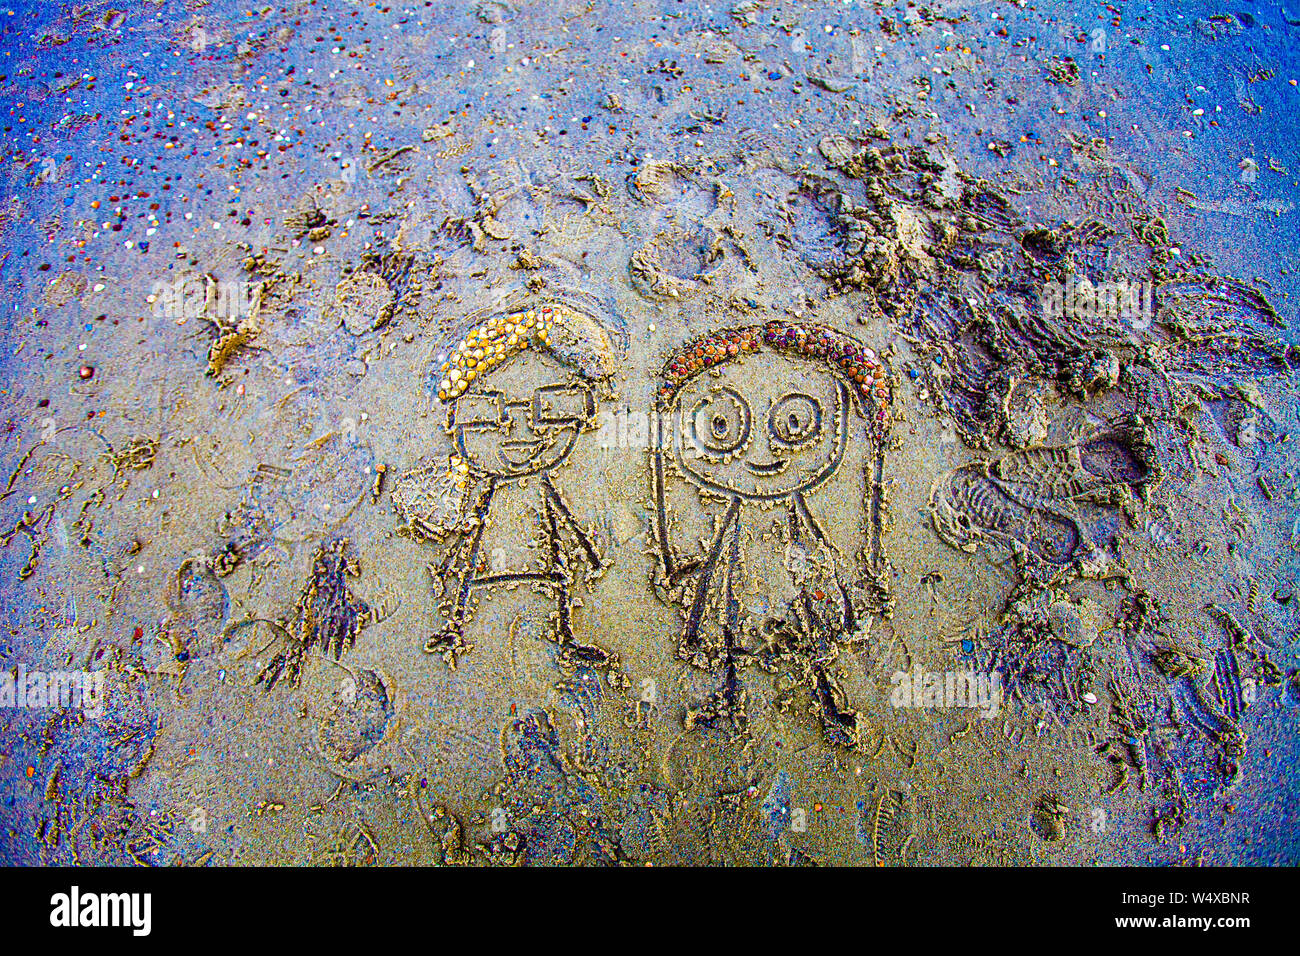 Sand-Couple, Art on the Sand of the Beach in Oostkapelle, Netherlands Stock Photo